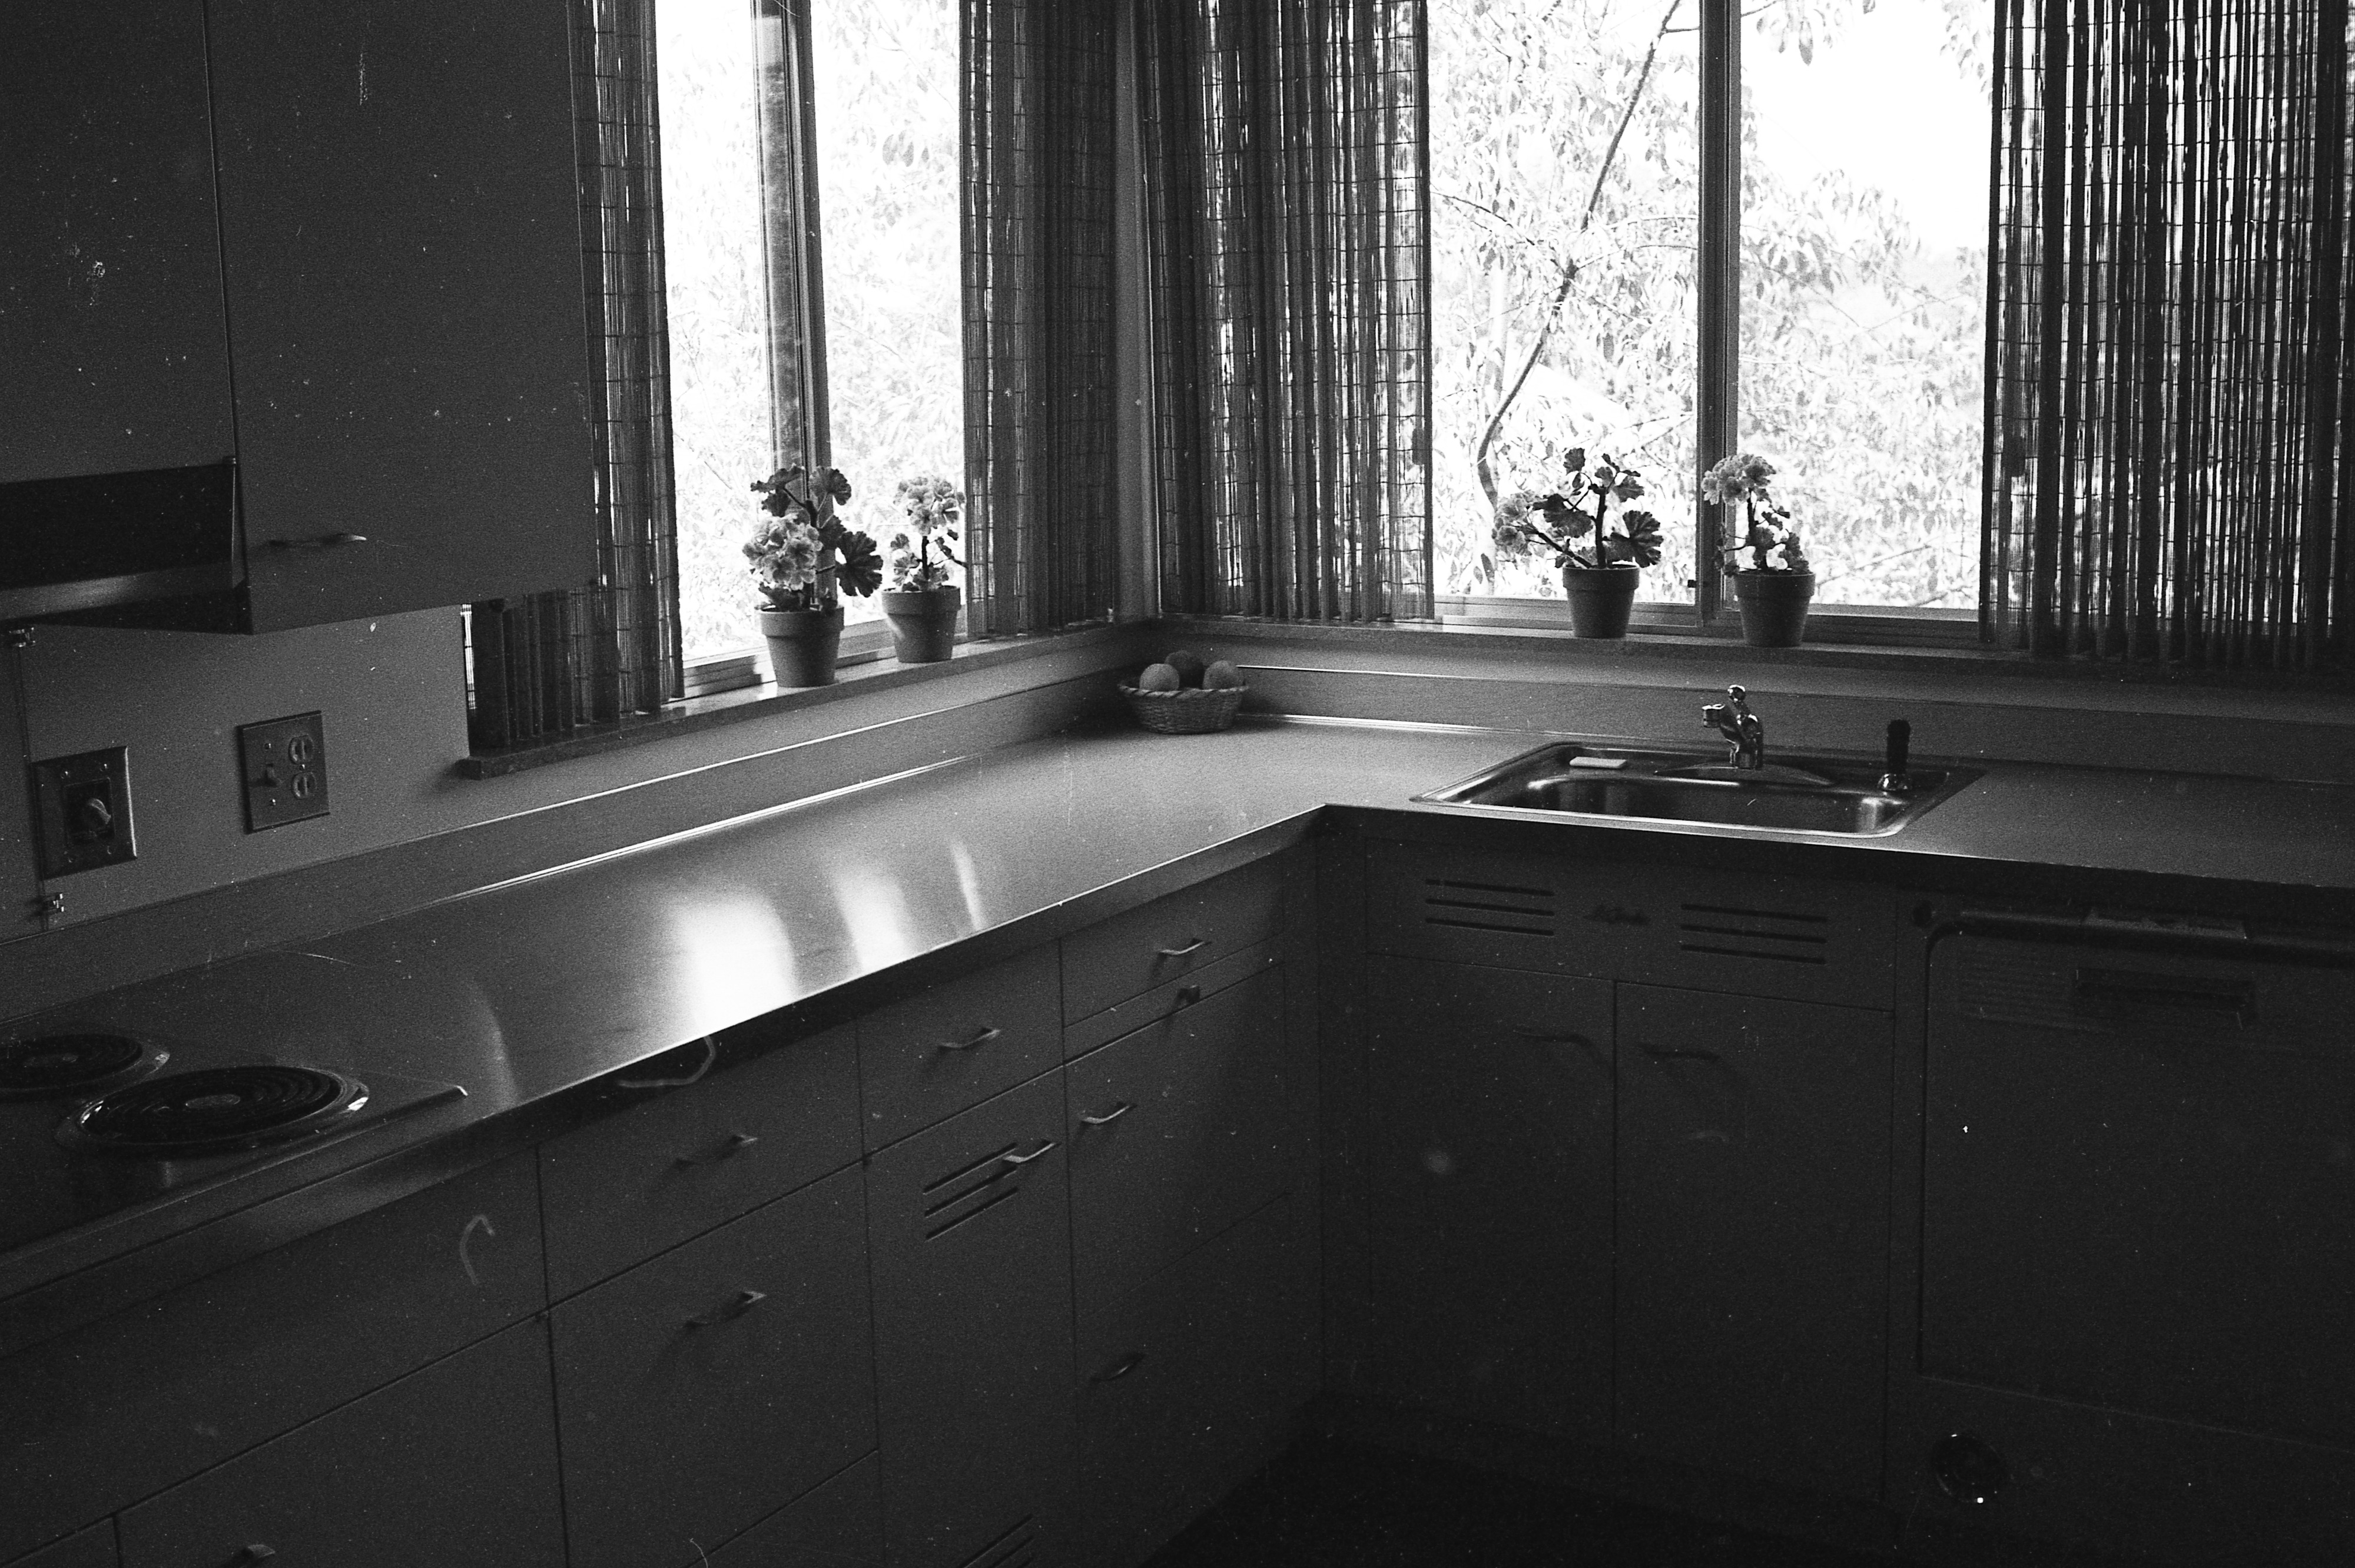 Kitchen of Clare and Carmen Schwegler Home on Londonderry Rd, August 1958 image